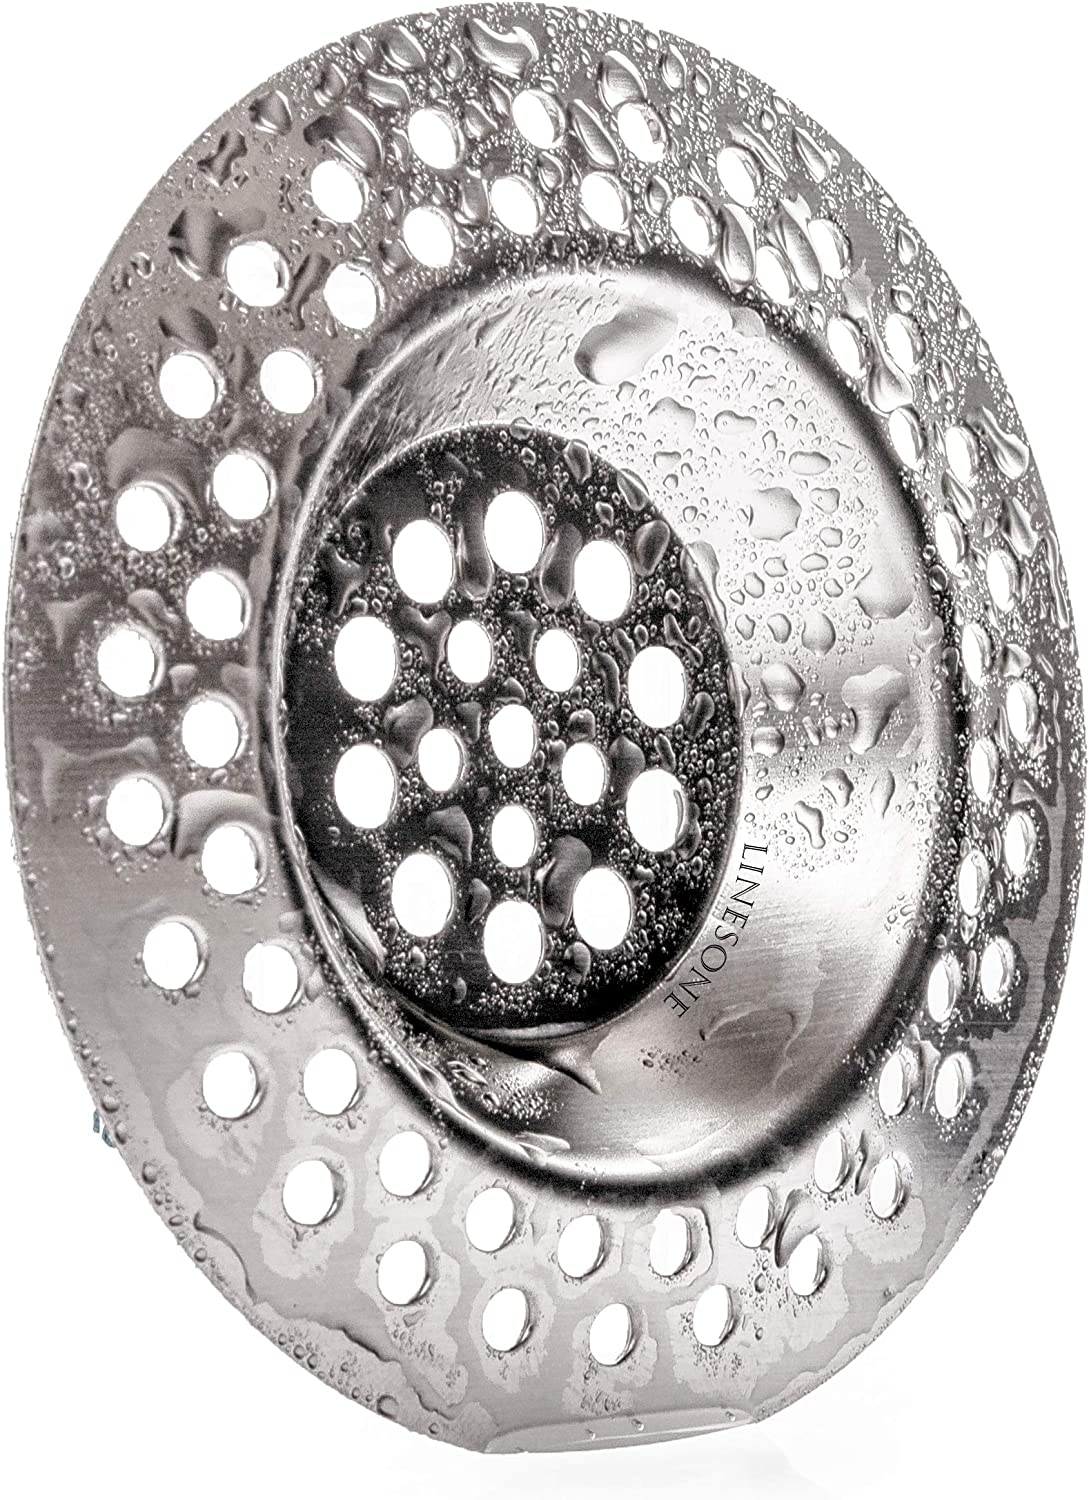 Standard strainer drain protector from clog for bathroom Lines One Portable steel hair catcher kitchen shower 3 inches